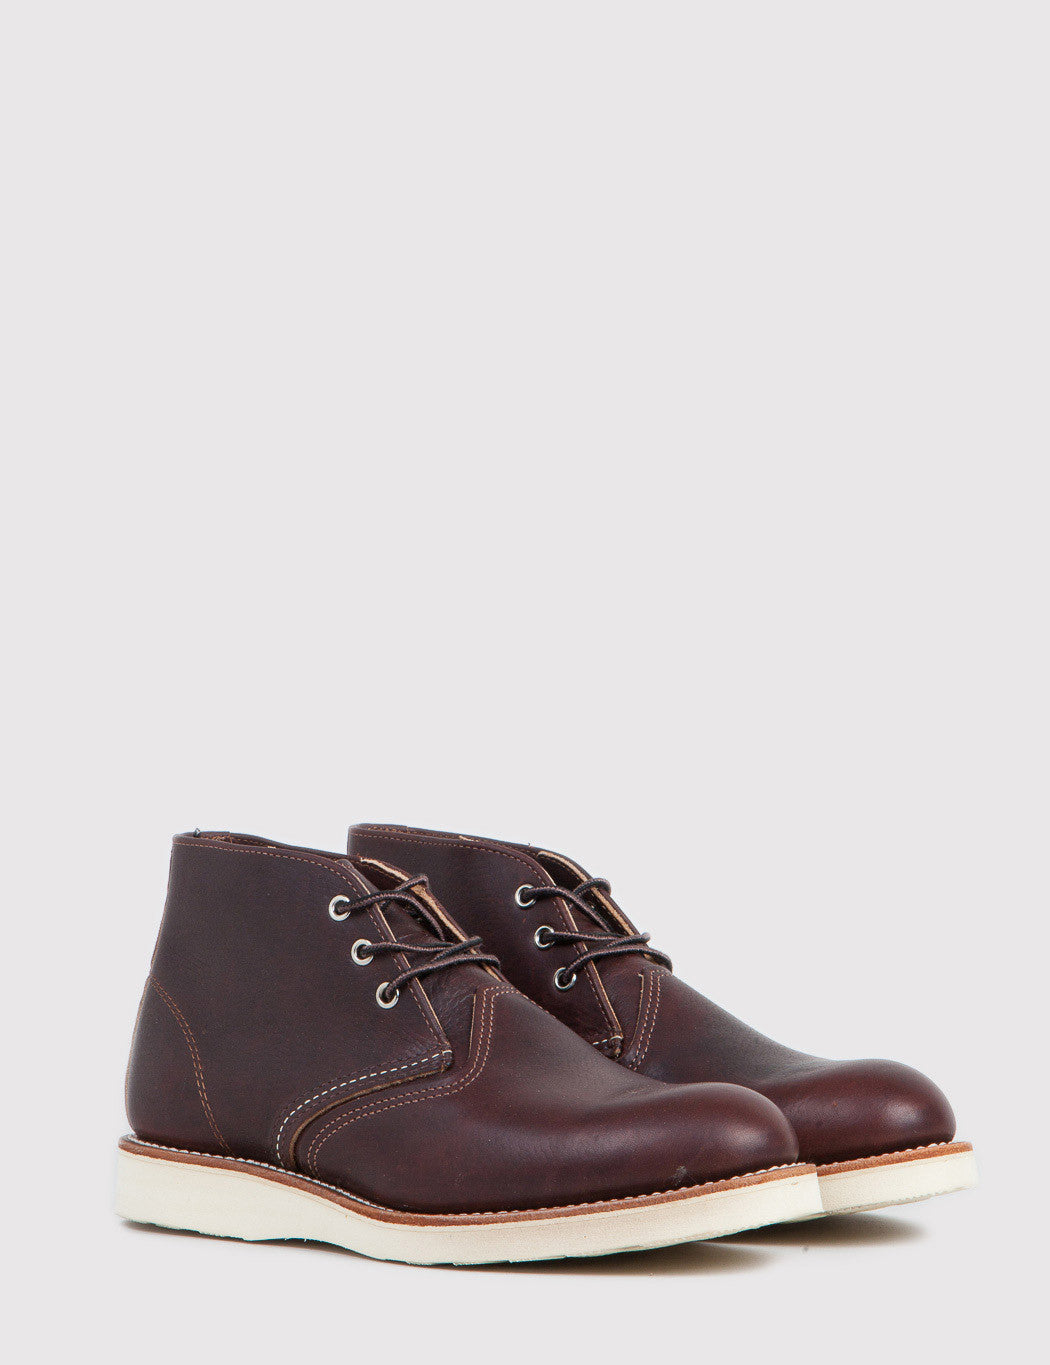 Red Wing 3141 Heritage Work Chukka - Brown